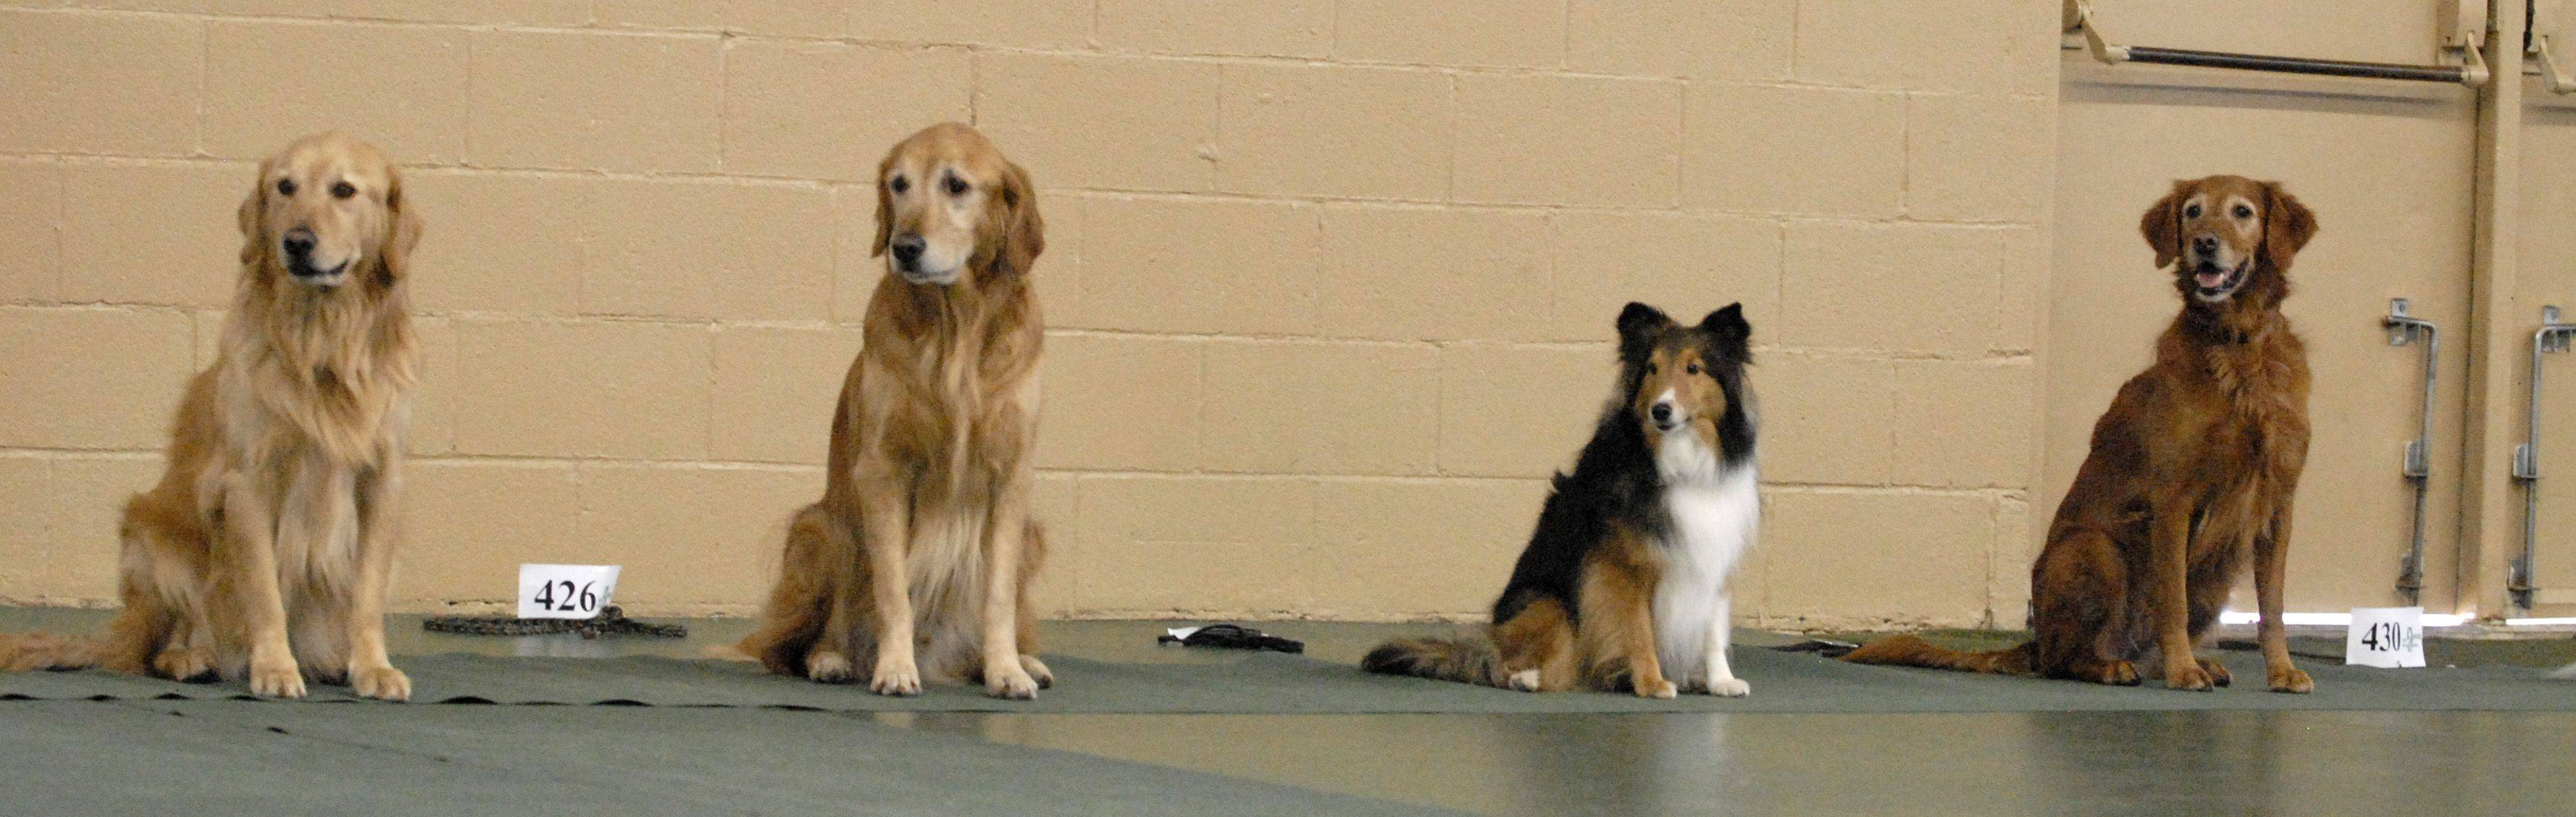 Pups line up and wait in their seated position for their owners' command during the rally competition at the Fox Valley Training Club's annual Obedience Club Sunday. The dogs were left to wait for their owners without coming out of their seated position until their owners came back. Nearly 178 different breeds participated in the Obedience Club's event with mostly purebred dogs.